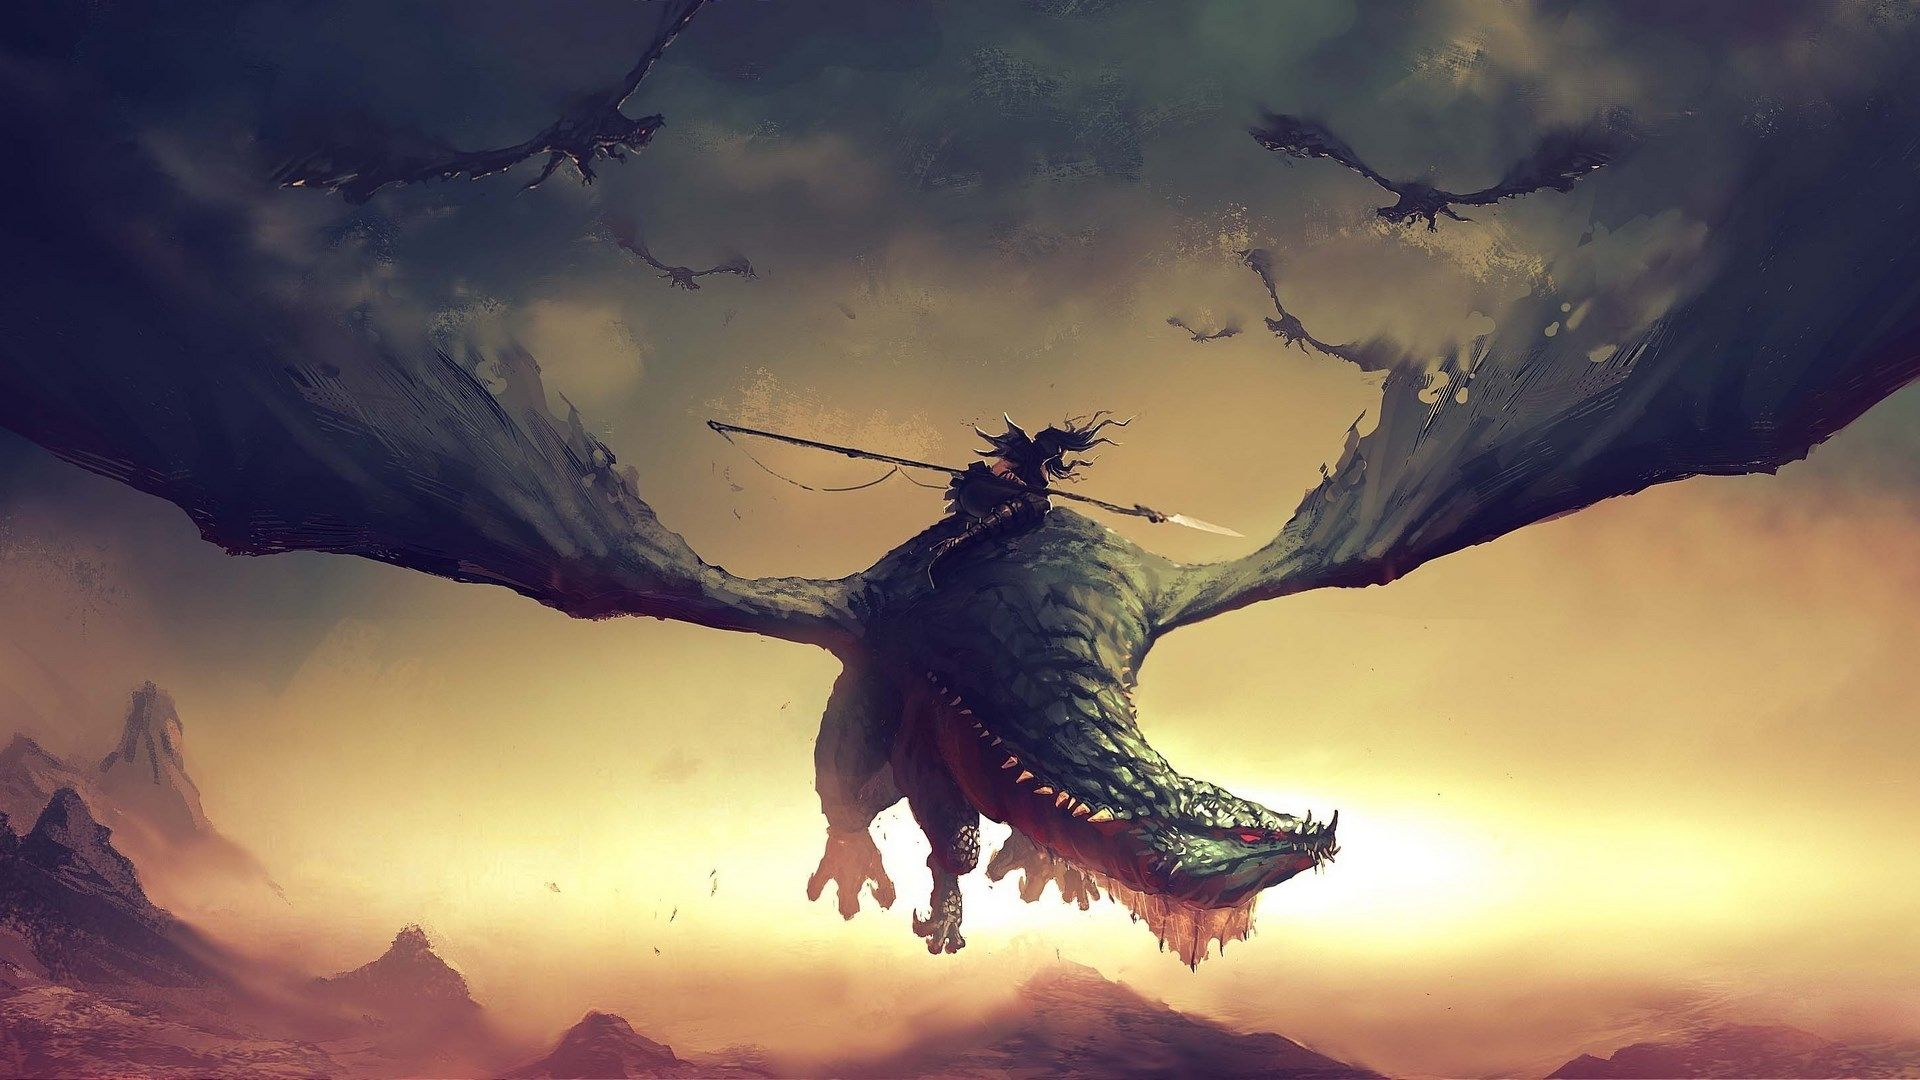 2017-03-04 - Images for Desktop: dragon backround - #1408249